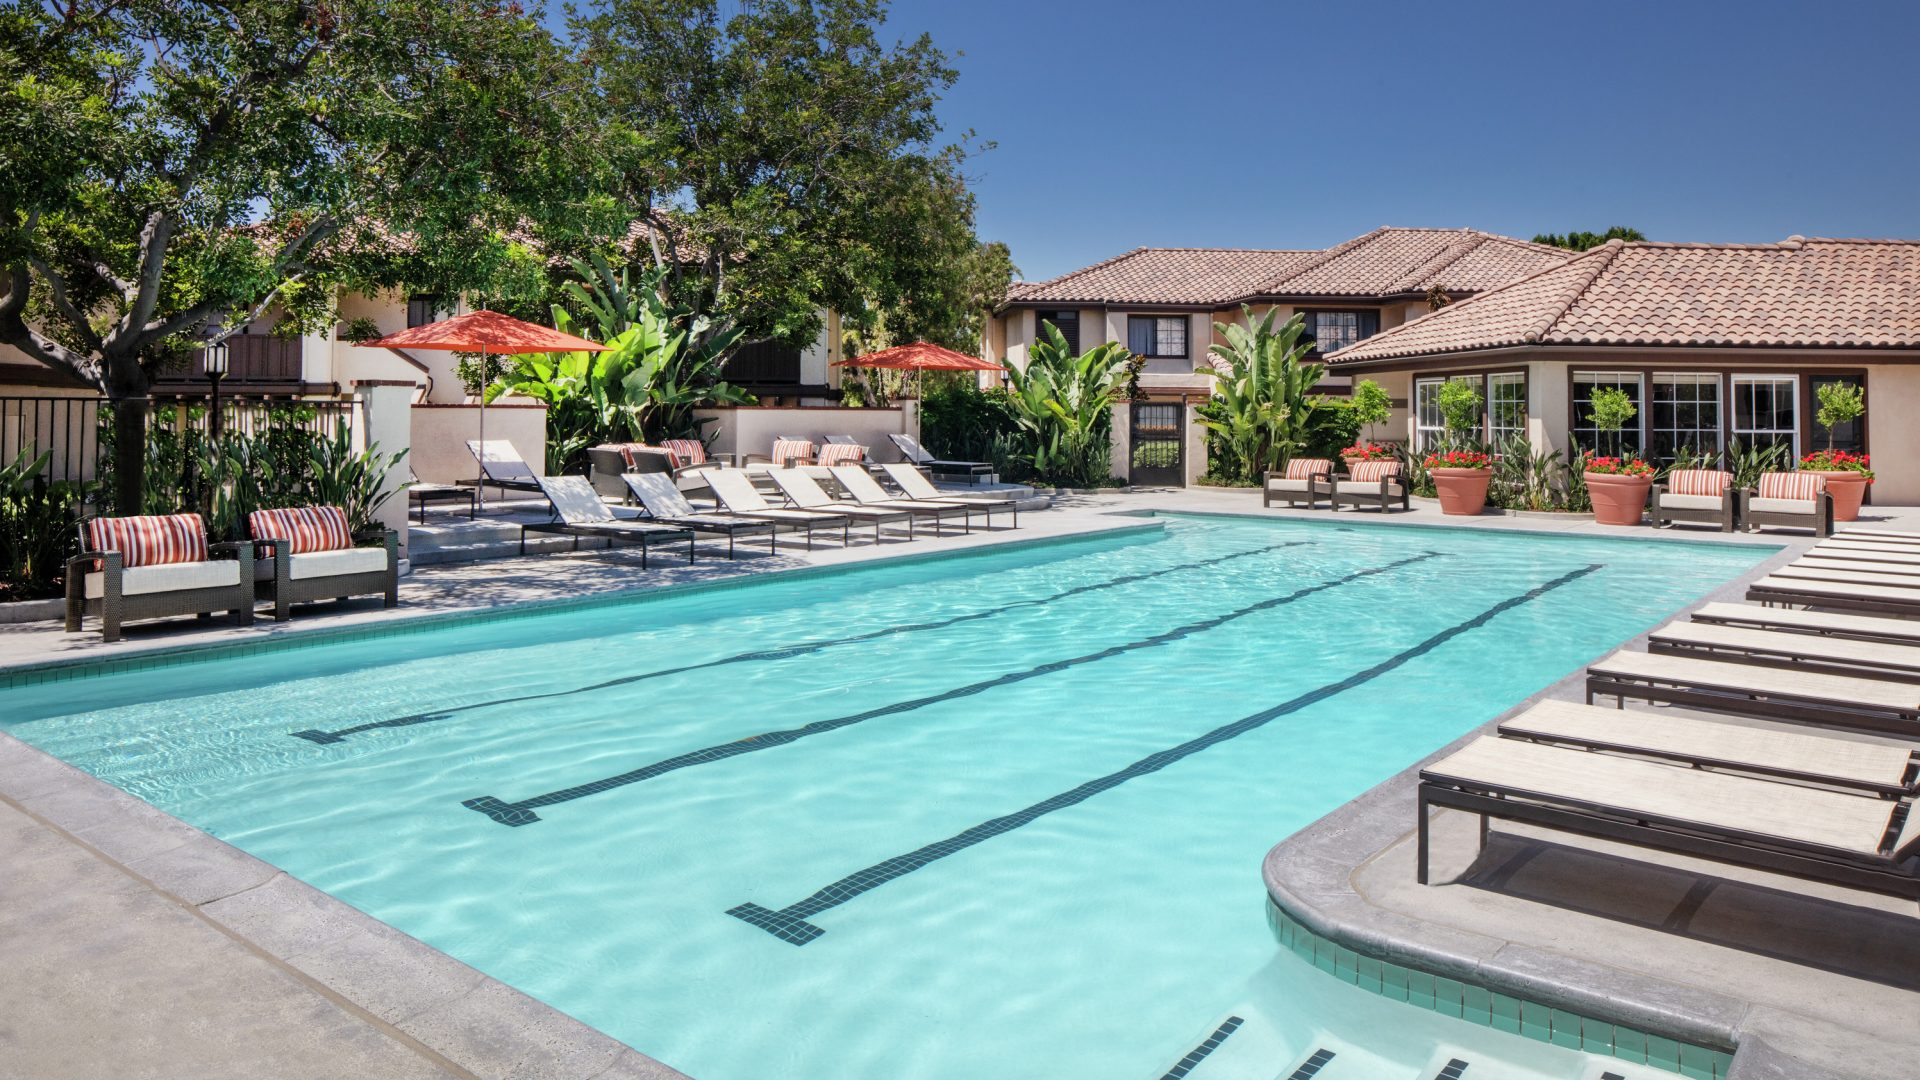 Pool view at Rancho Tierra Apartment Homes in Tustin, CA.